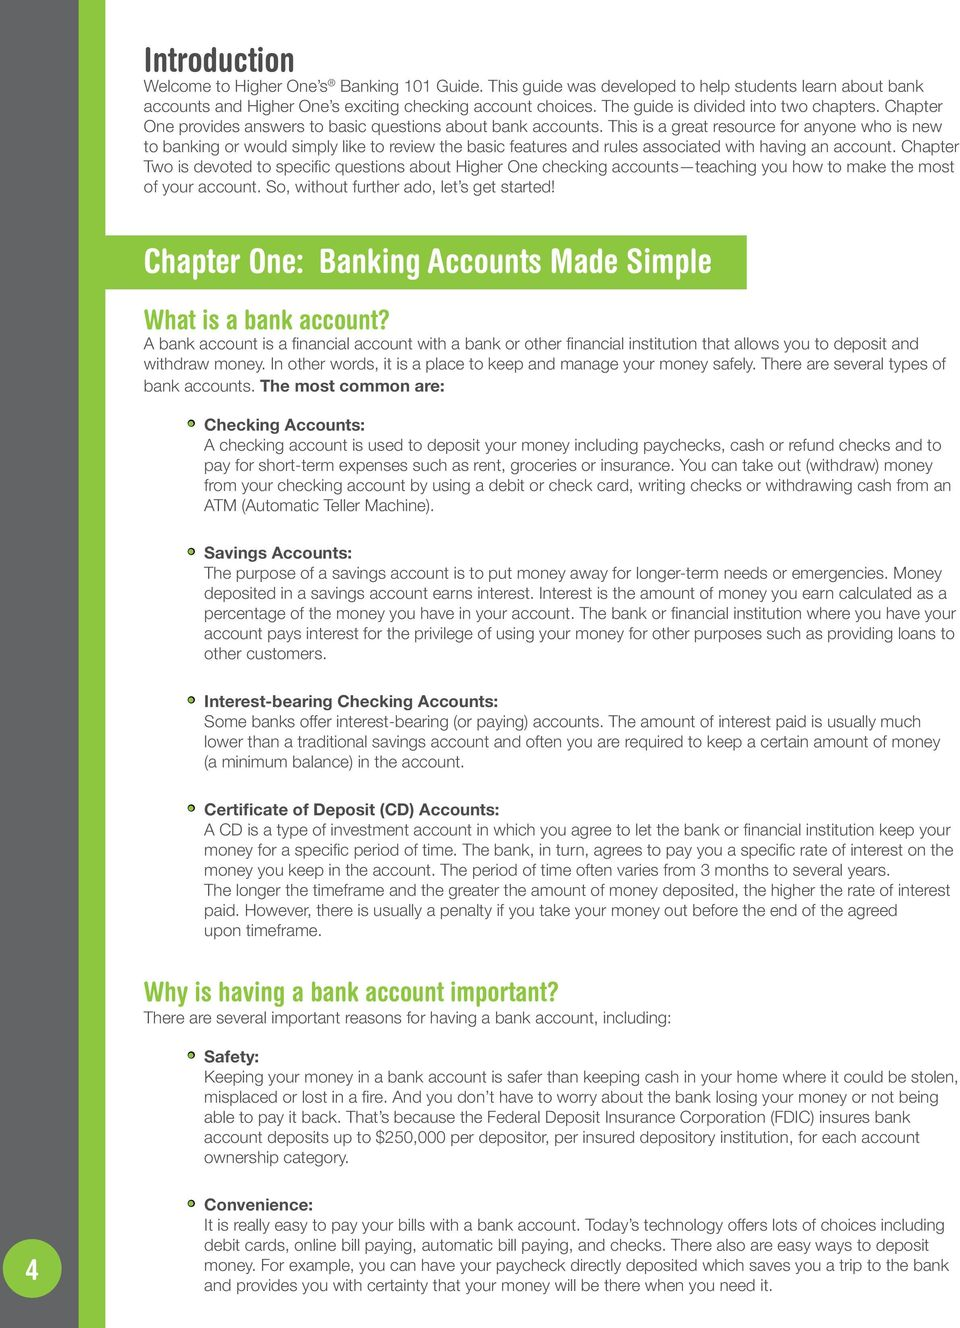 This is a great resource for anyone who is new to banking or would simply like to review the basic features and rules associated with having an account.